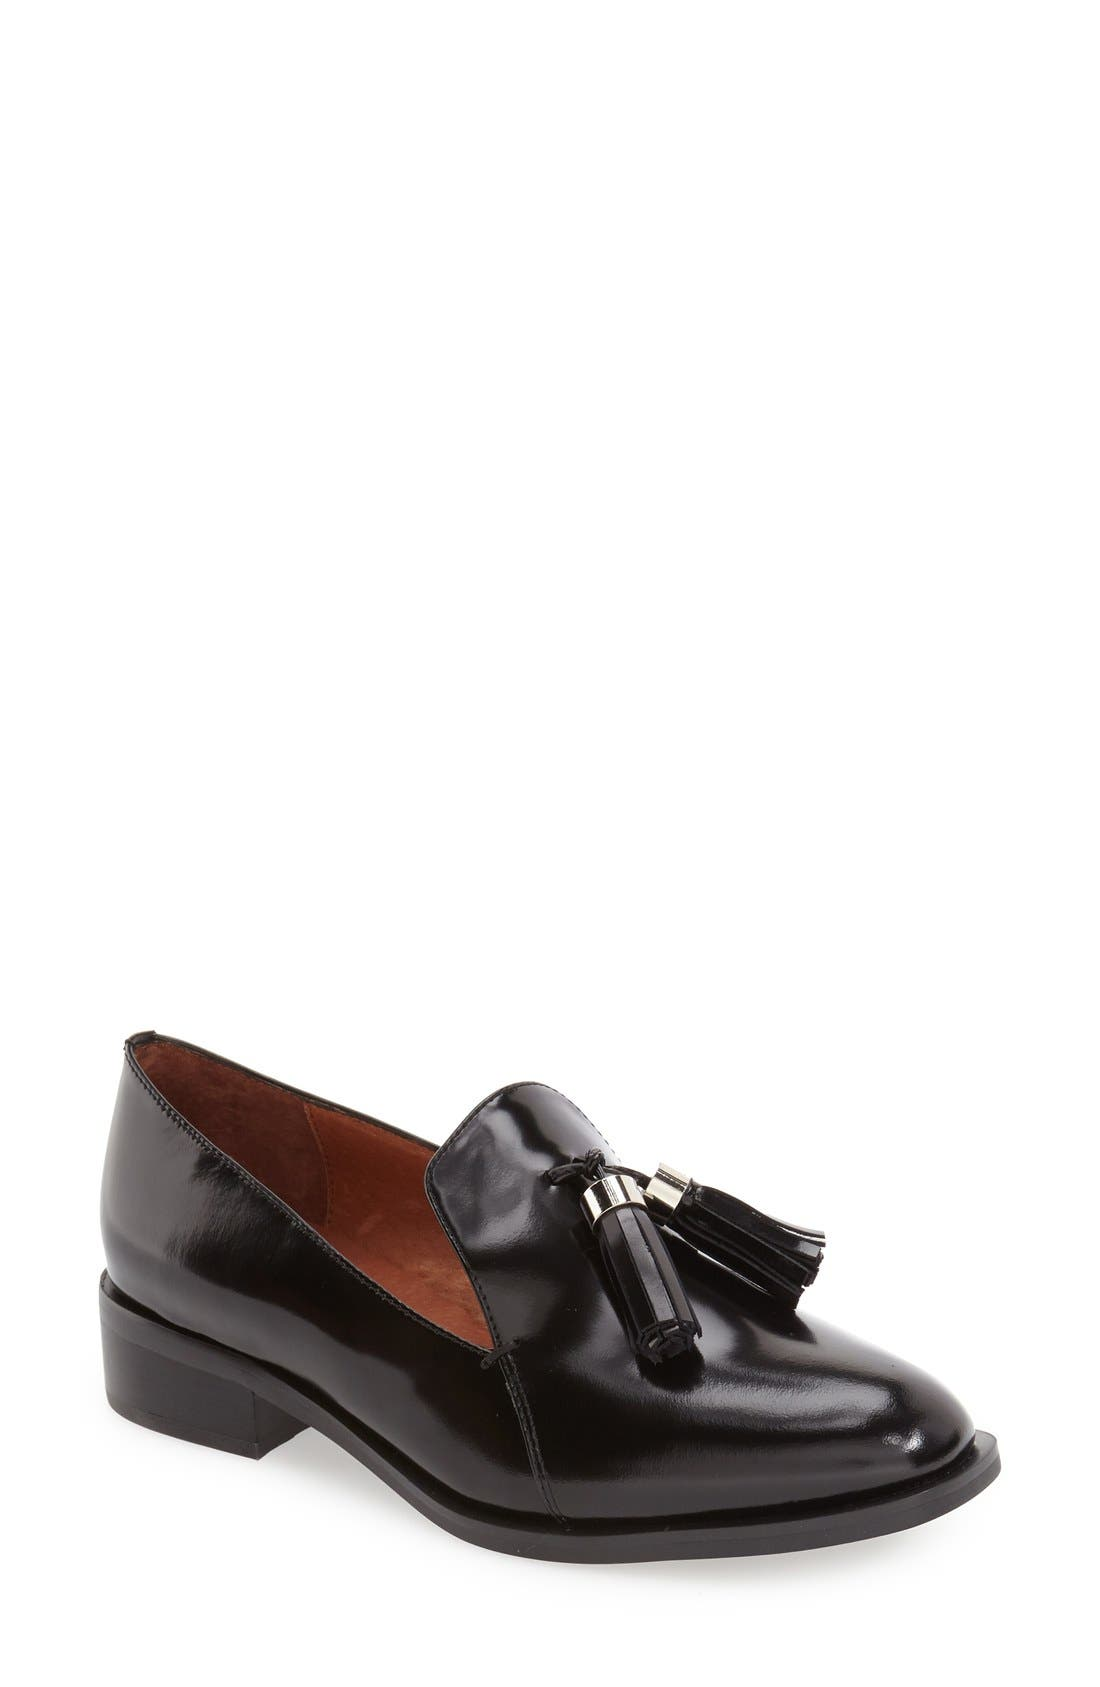 Jeffrey Campbell 'Lawford' Tassel Loafer (Women)